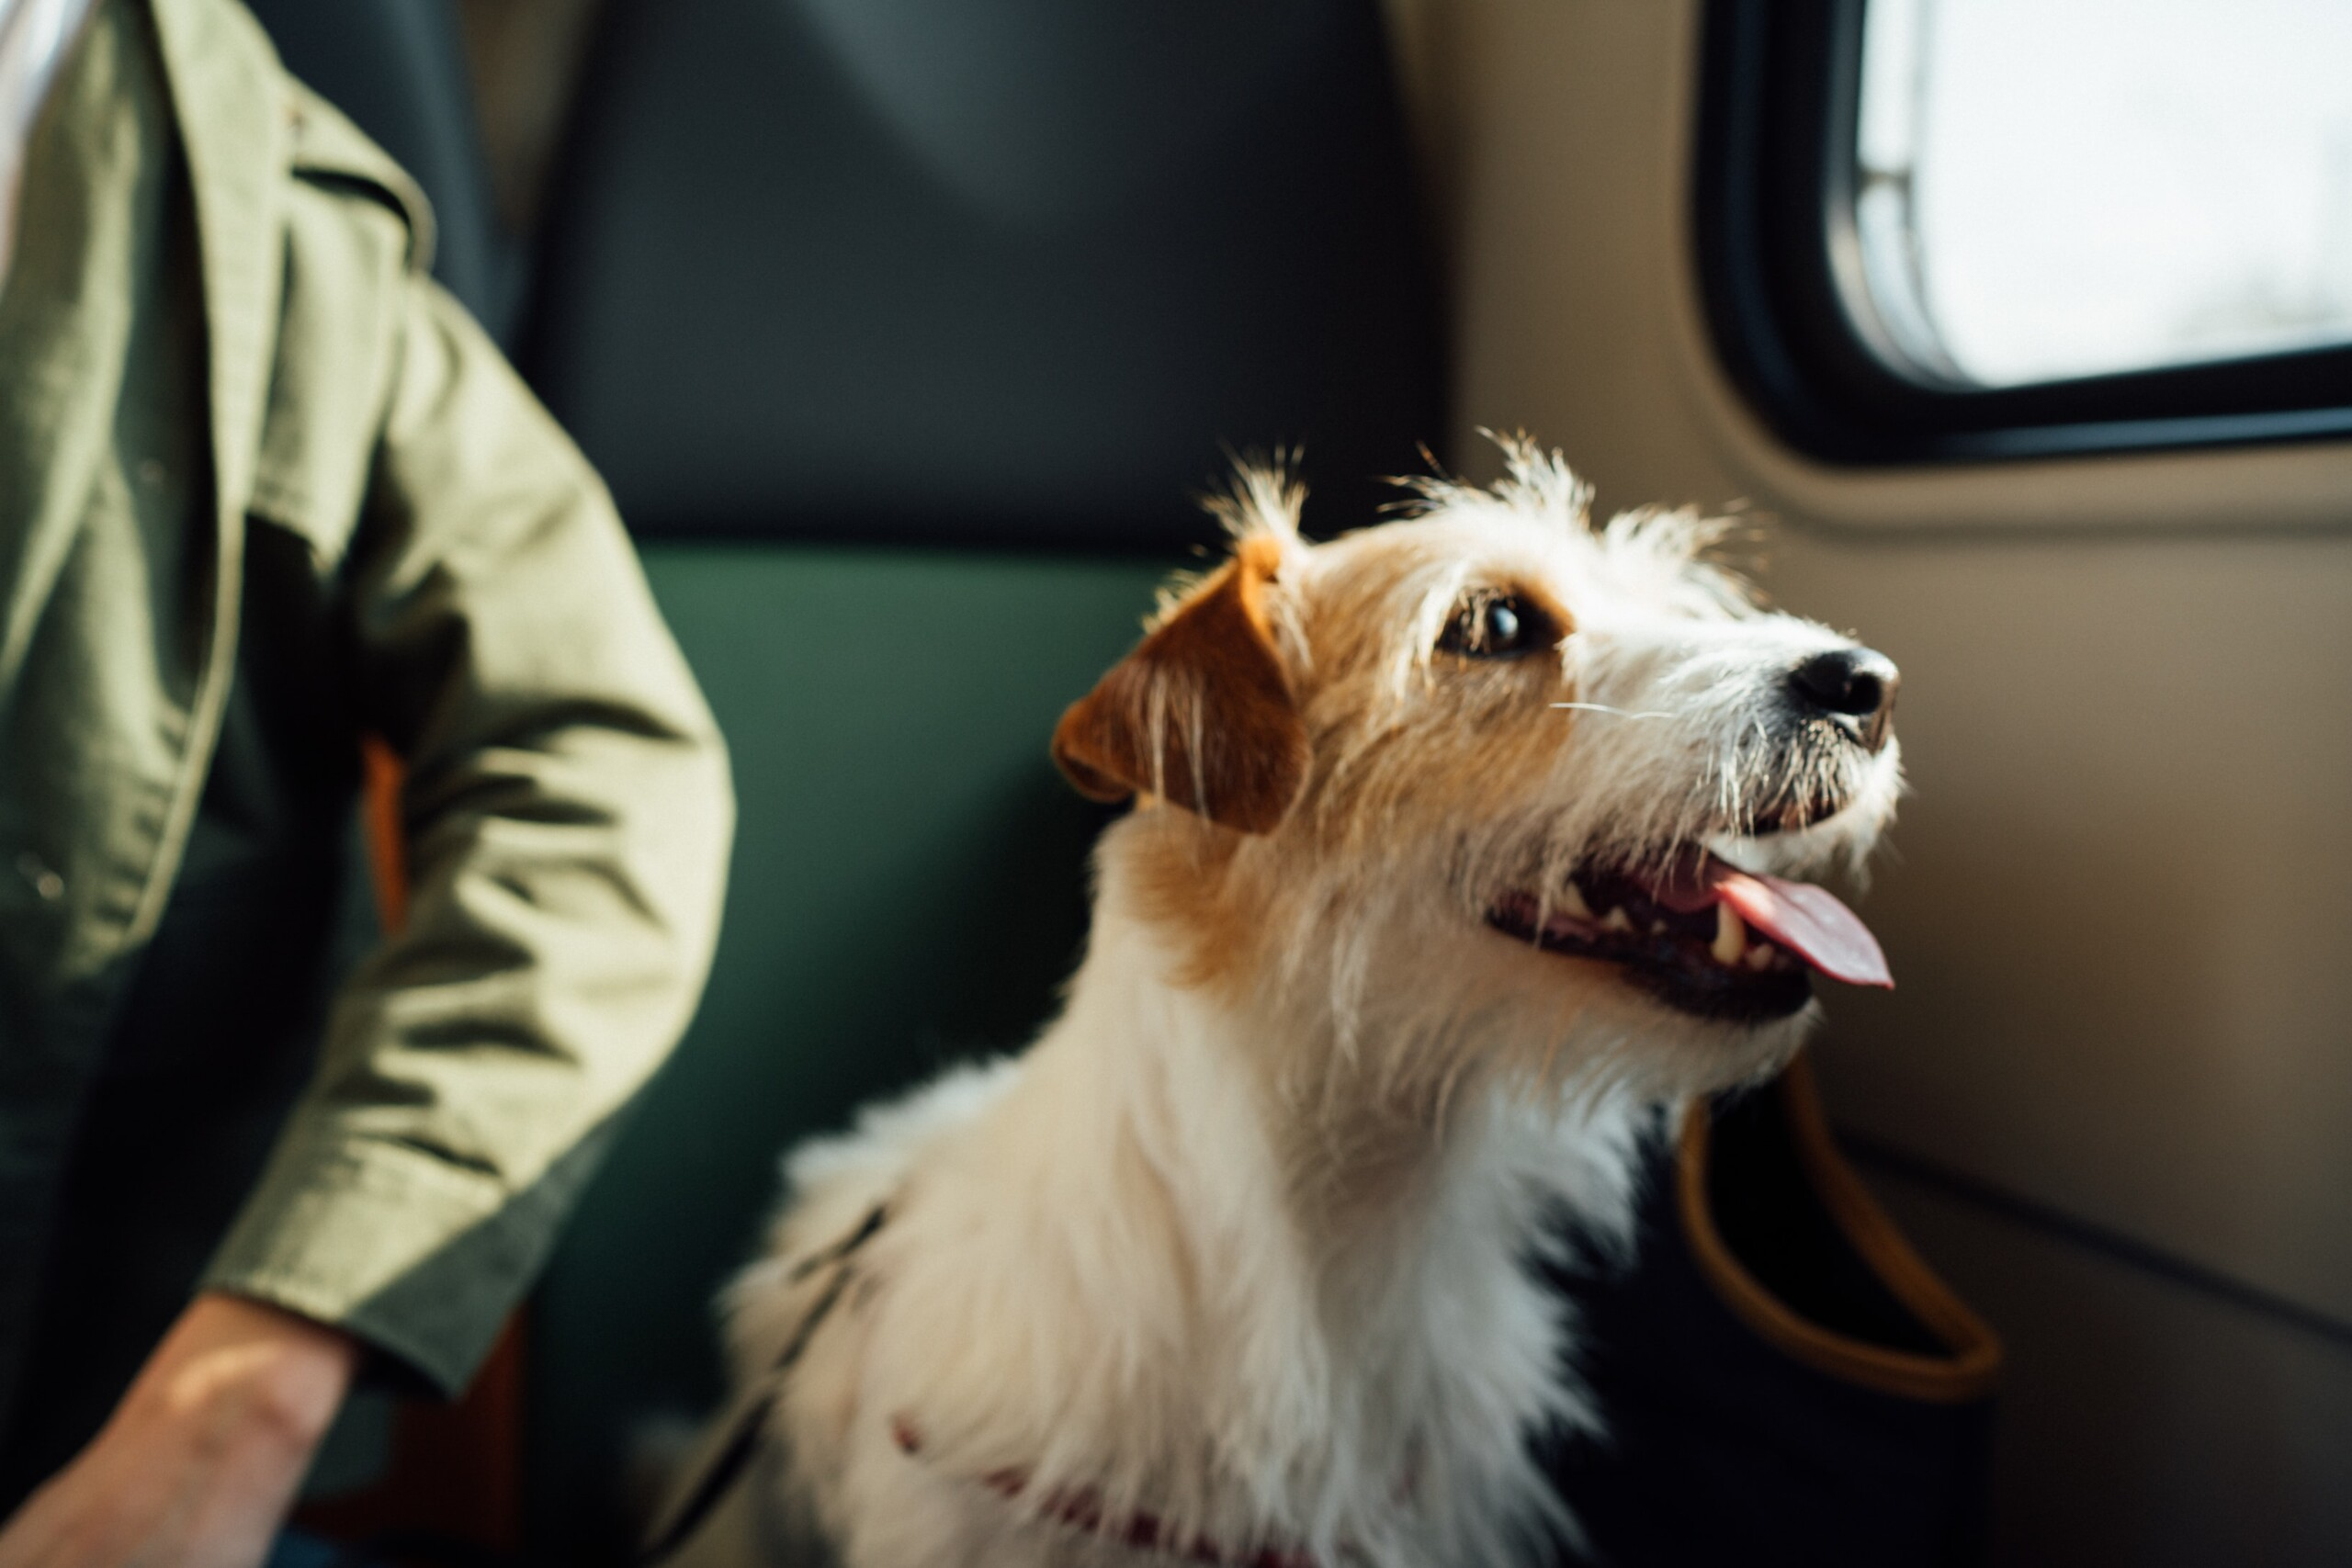 A pet dog travelling on a train